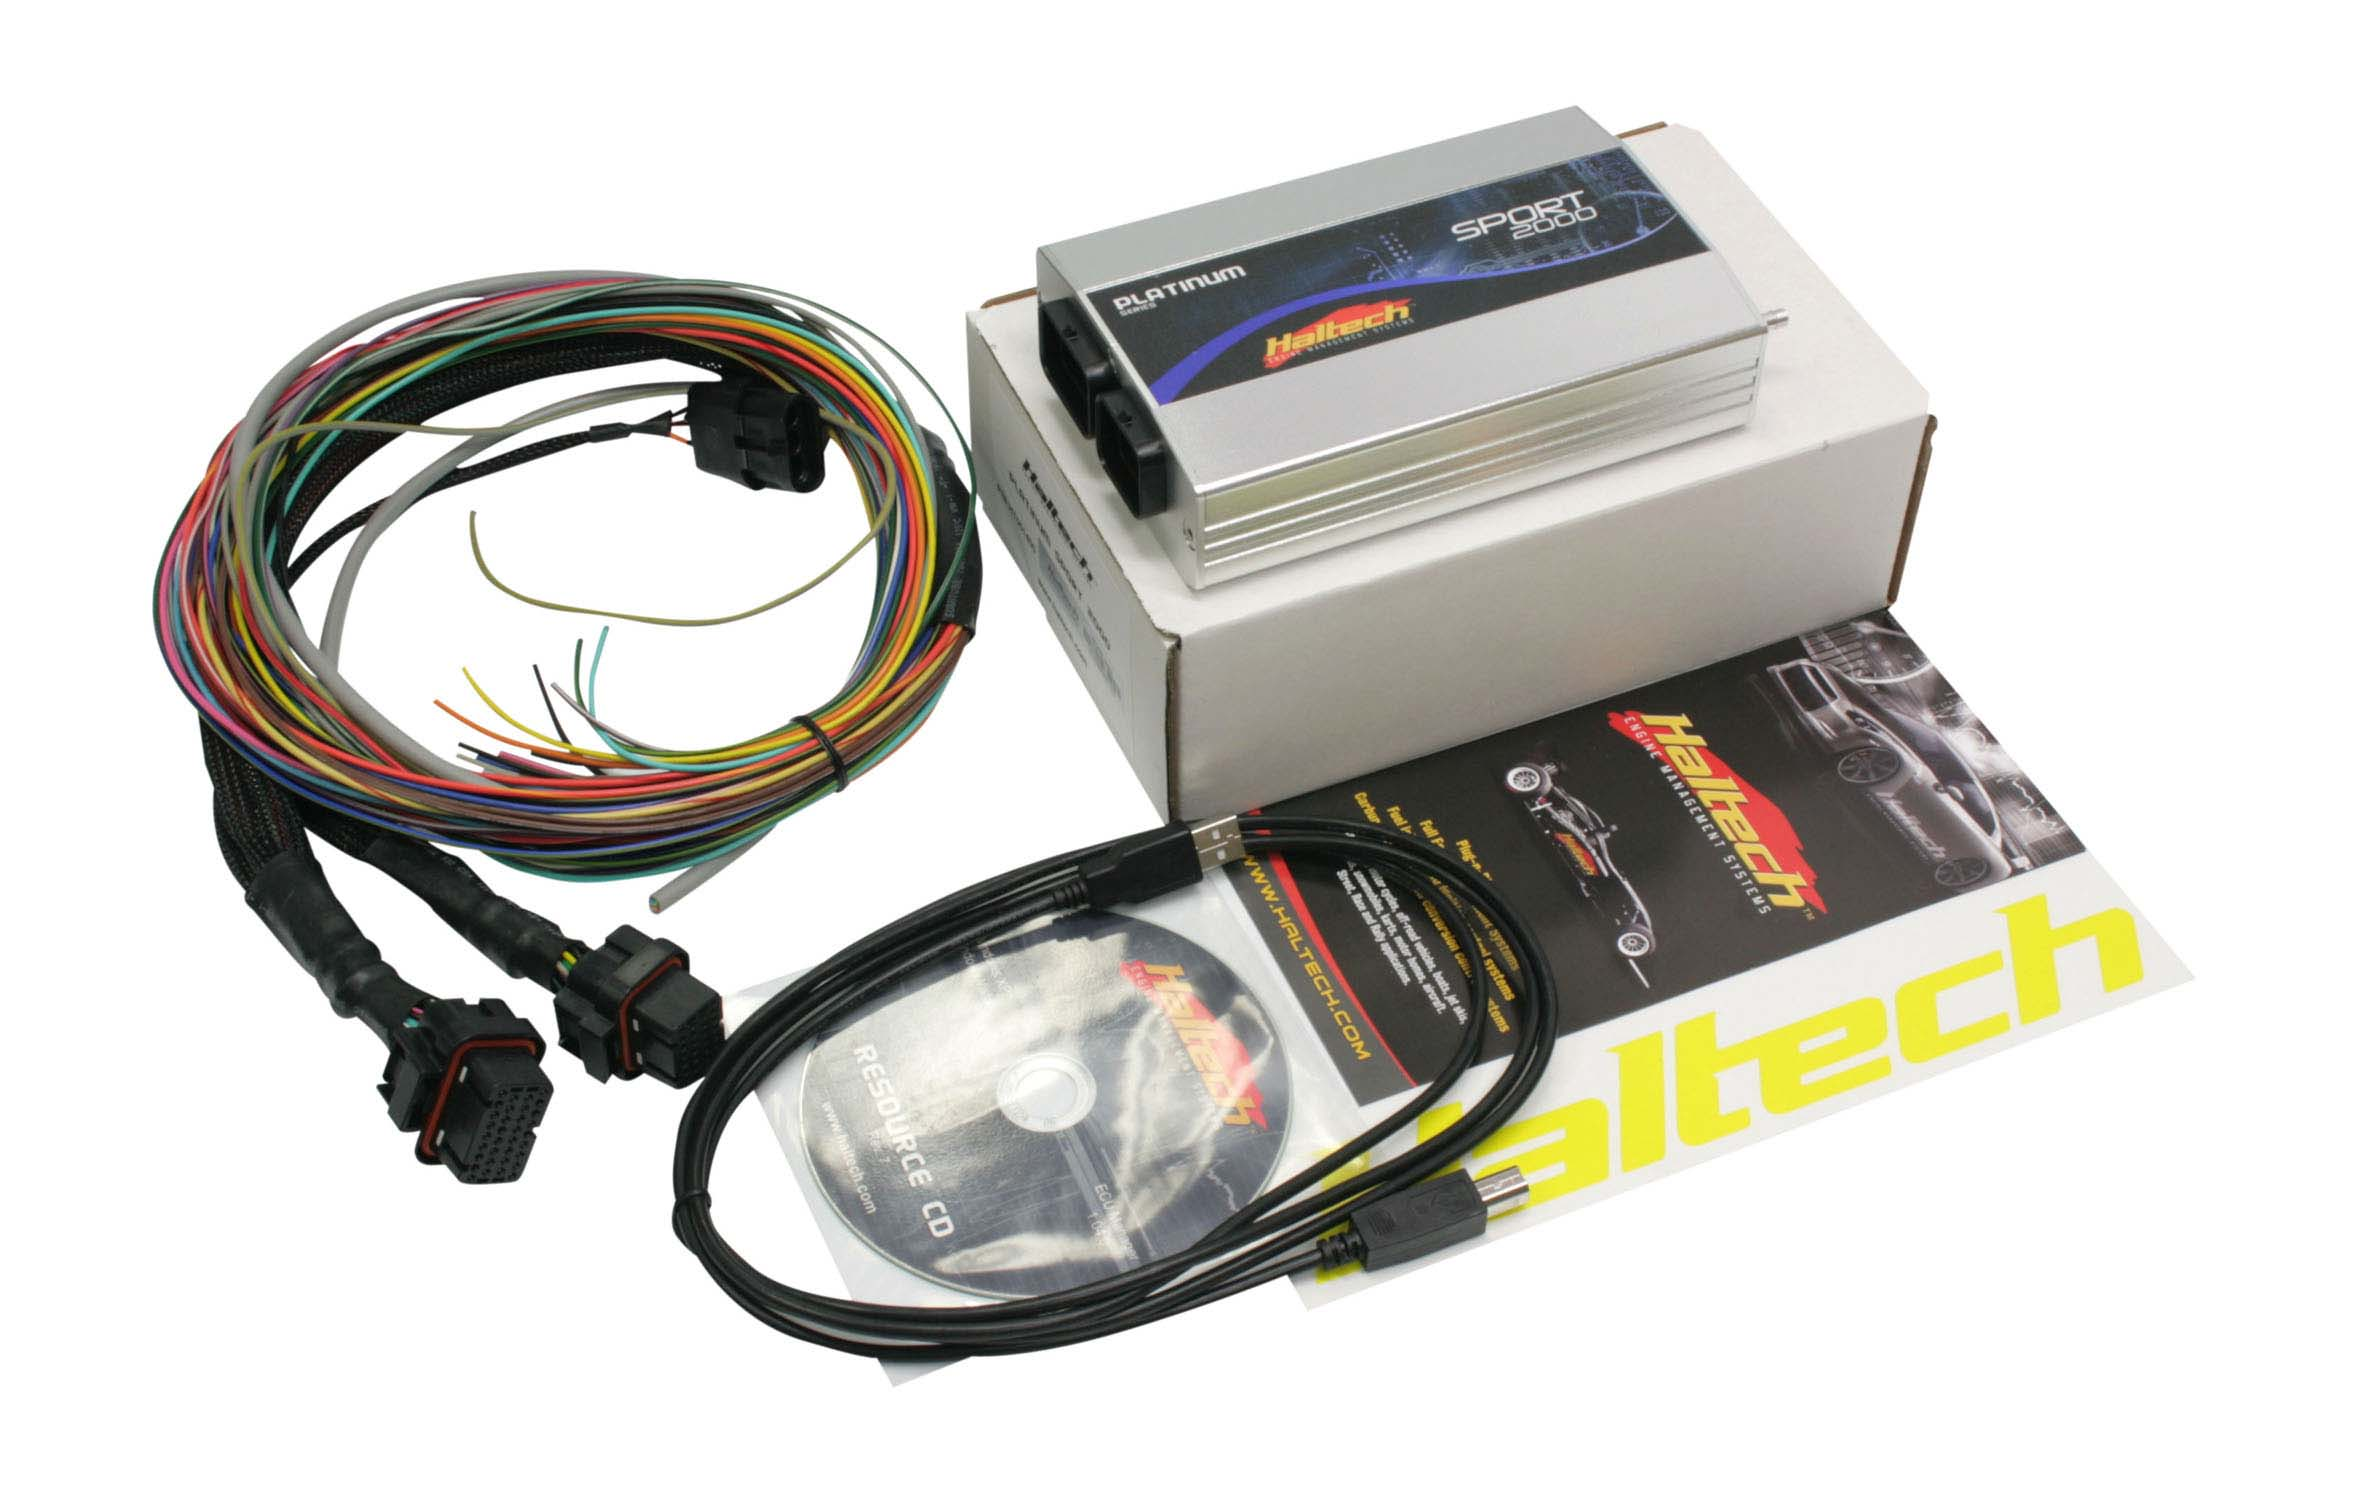 3796_0 superior automotive web shop haltech platinum sport 2000 ecu haltech fuse box at edmiracle.co